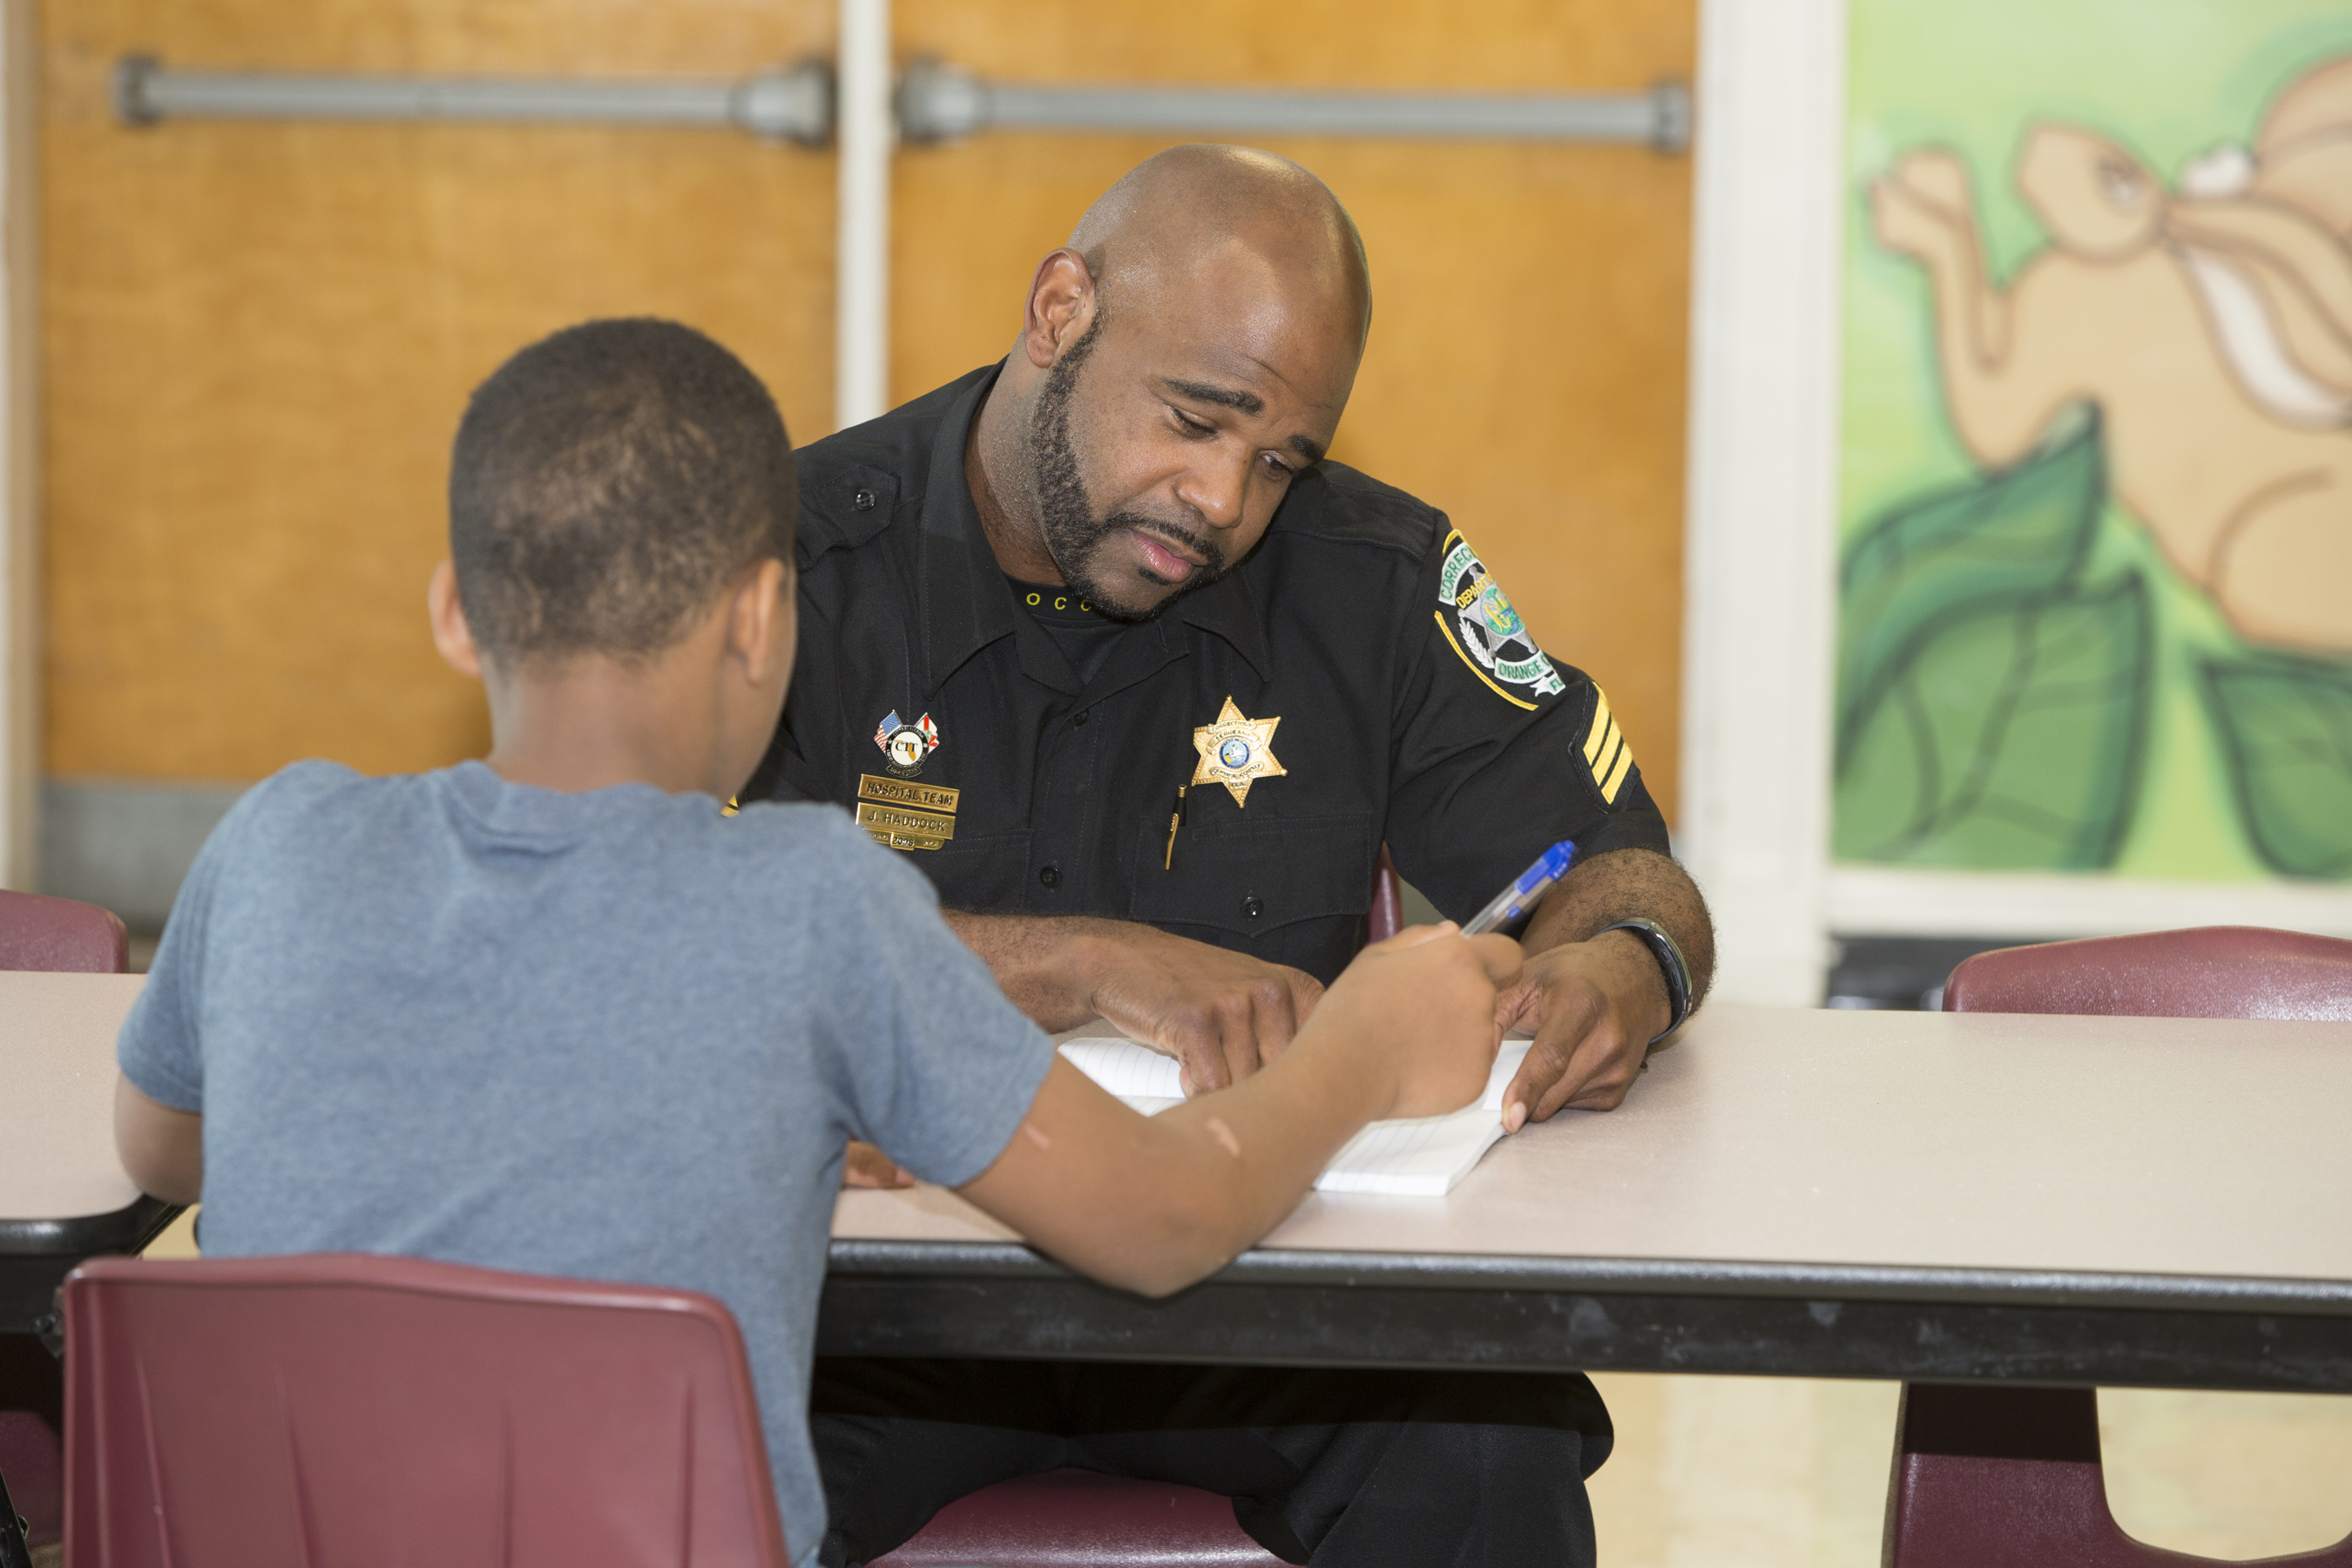 Corrections officer mentoring a student